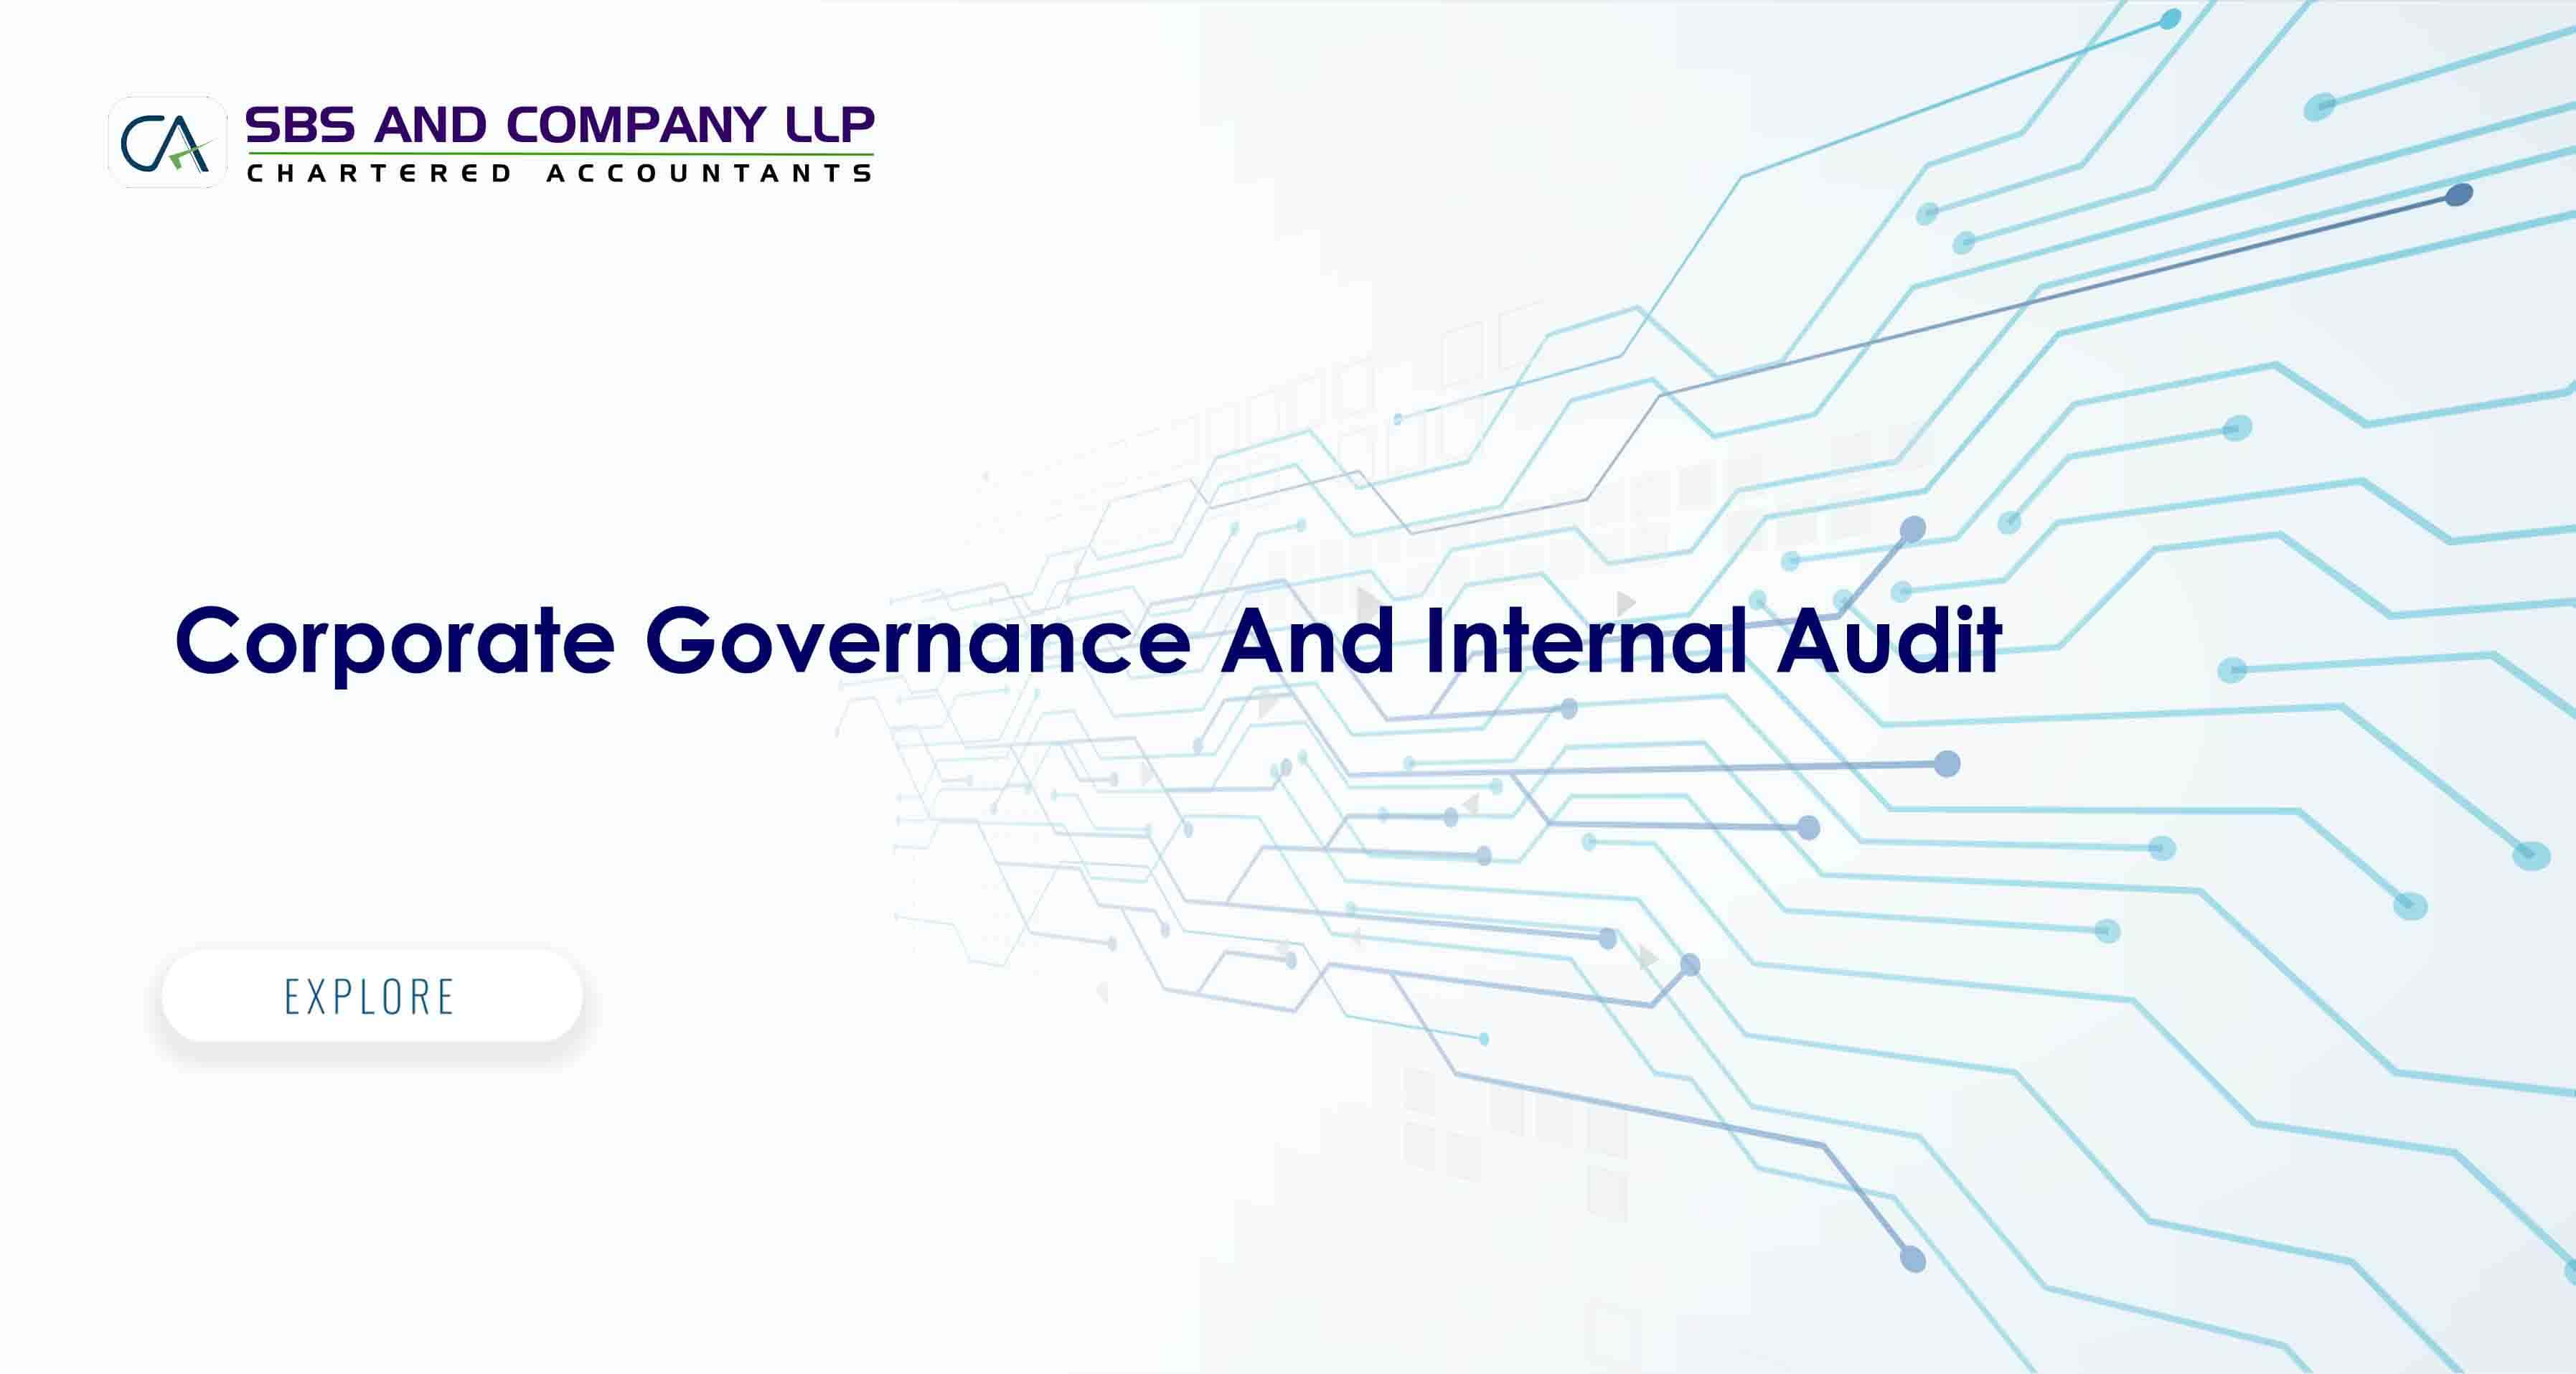 Corporate Governance And Internal Audit